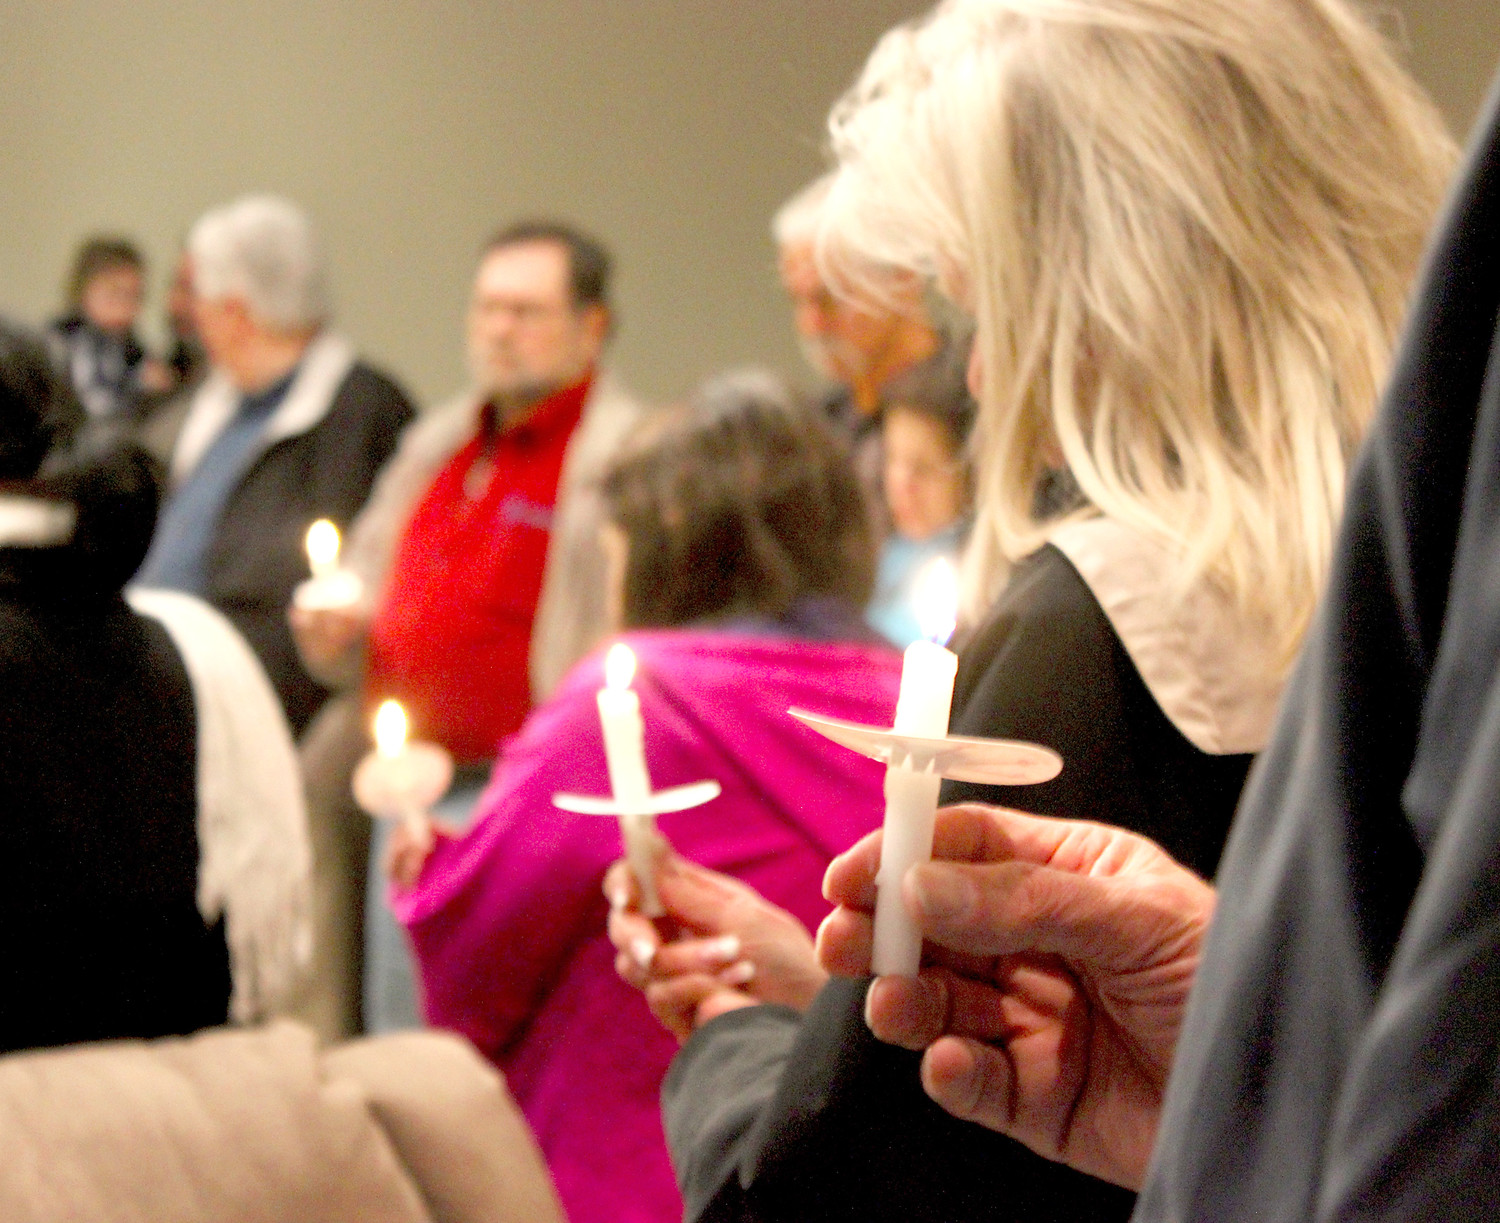 CANDLES were lit for a brief prayer vigil following New Hope Pregnancy Care Center's annual Celebration of Life event, held Monday at Living Word Church.